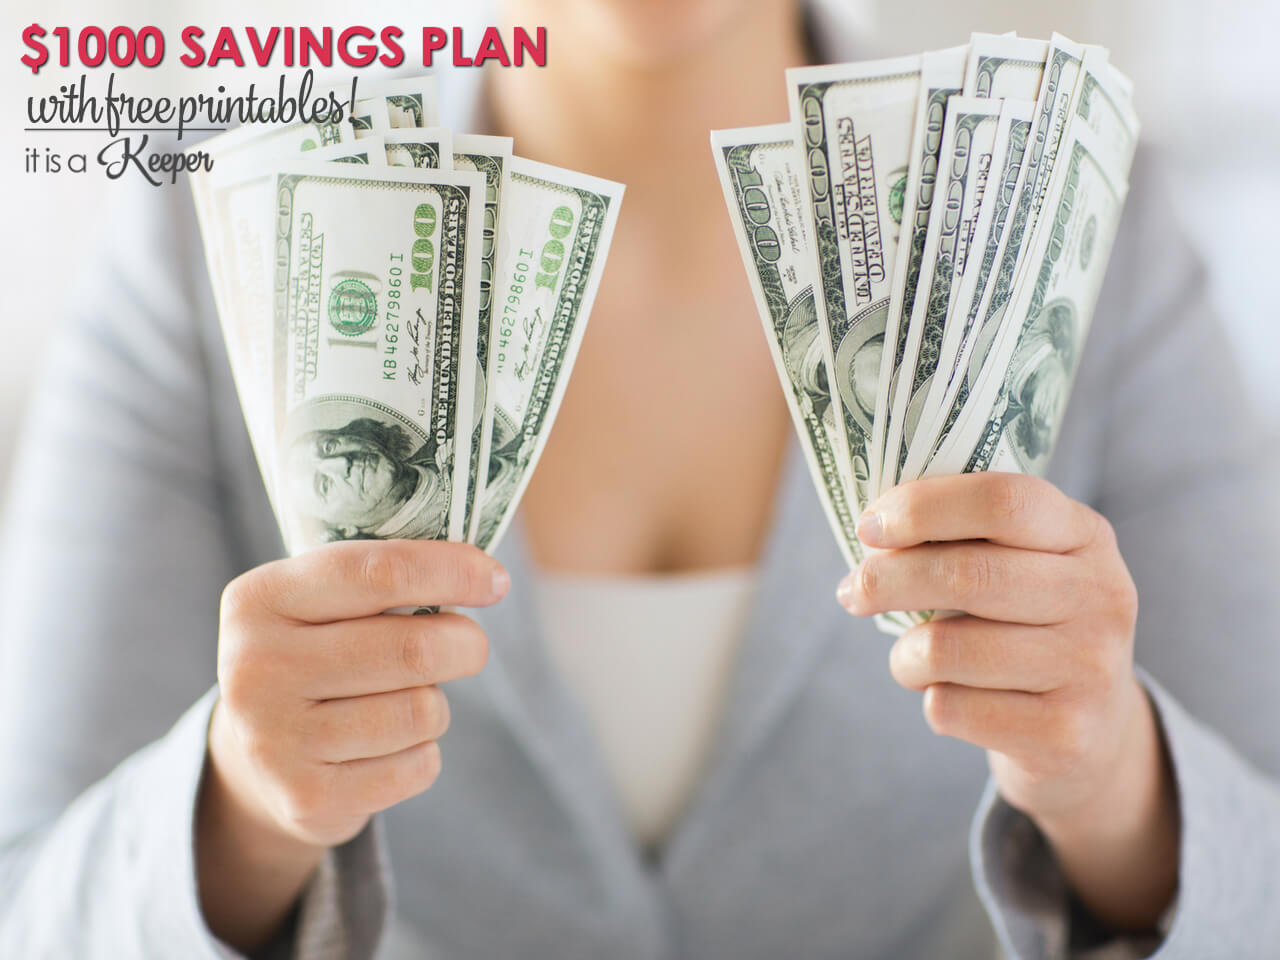 saving-plan-printables-how-i-save-over-1000-each-year-includes-free-printables-c